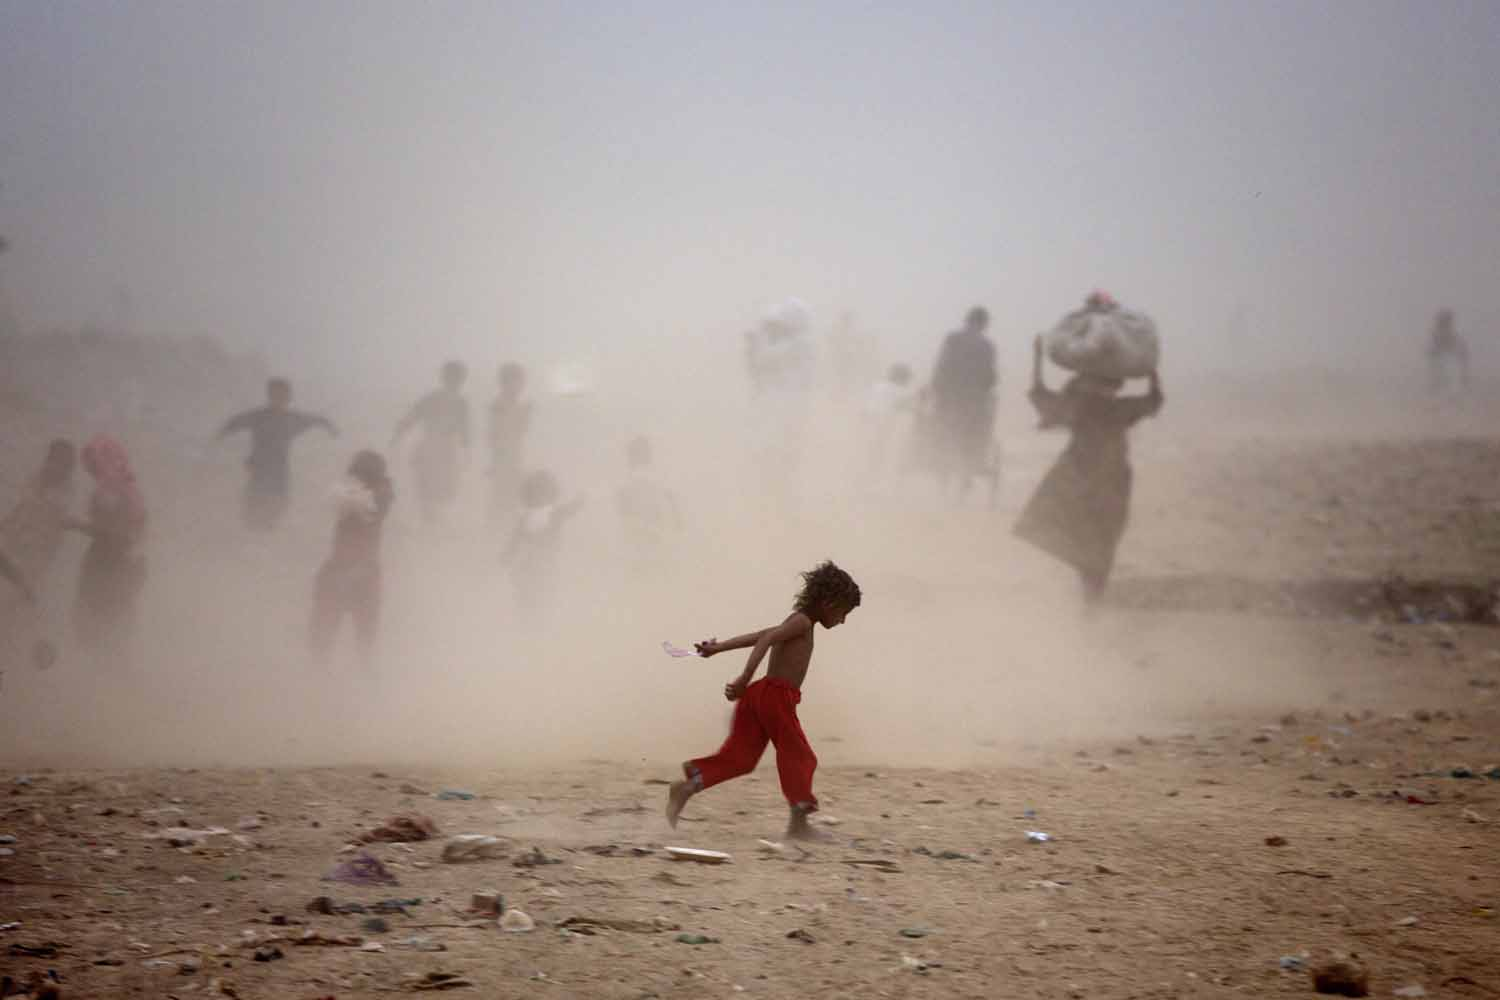 May 29, 2014. Pakistanis run as they get caught in a sand storm on the outskirts of Islamabad, Pakistan.